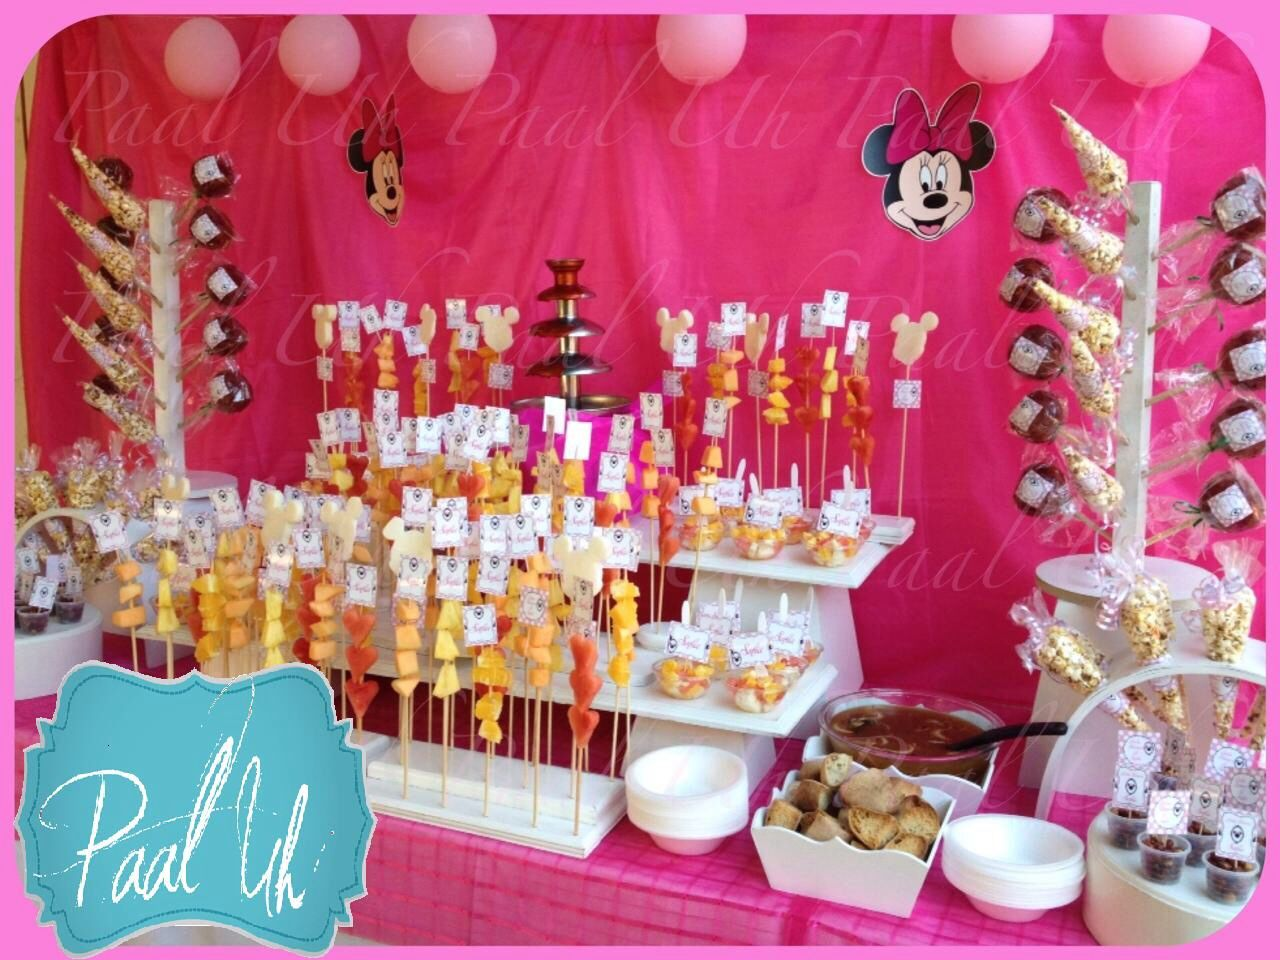 paal uh mesa de postres snacks minnie mouse pink dulce y botana